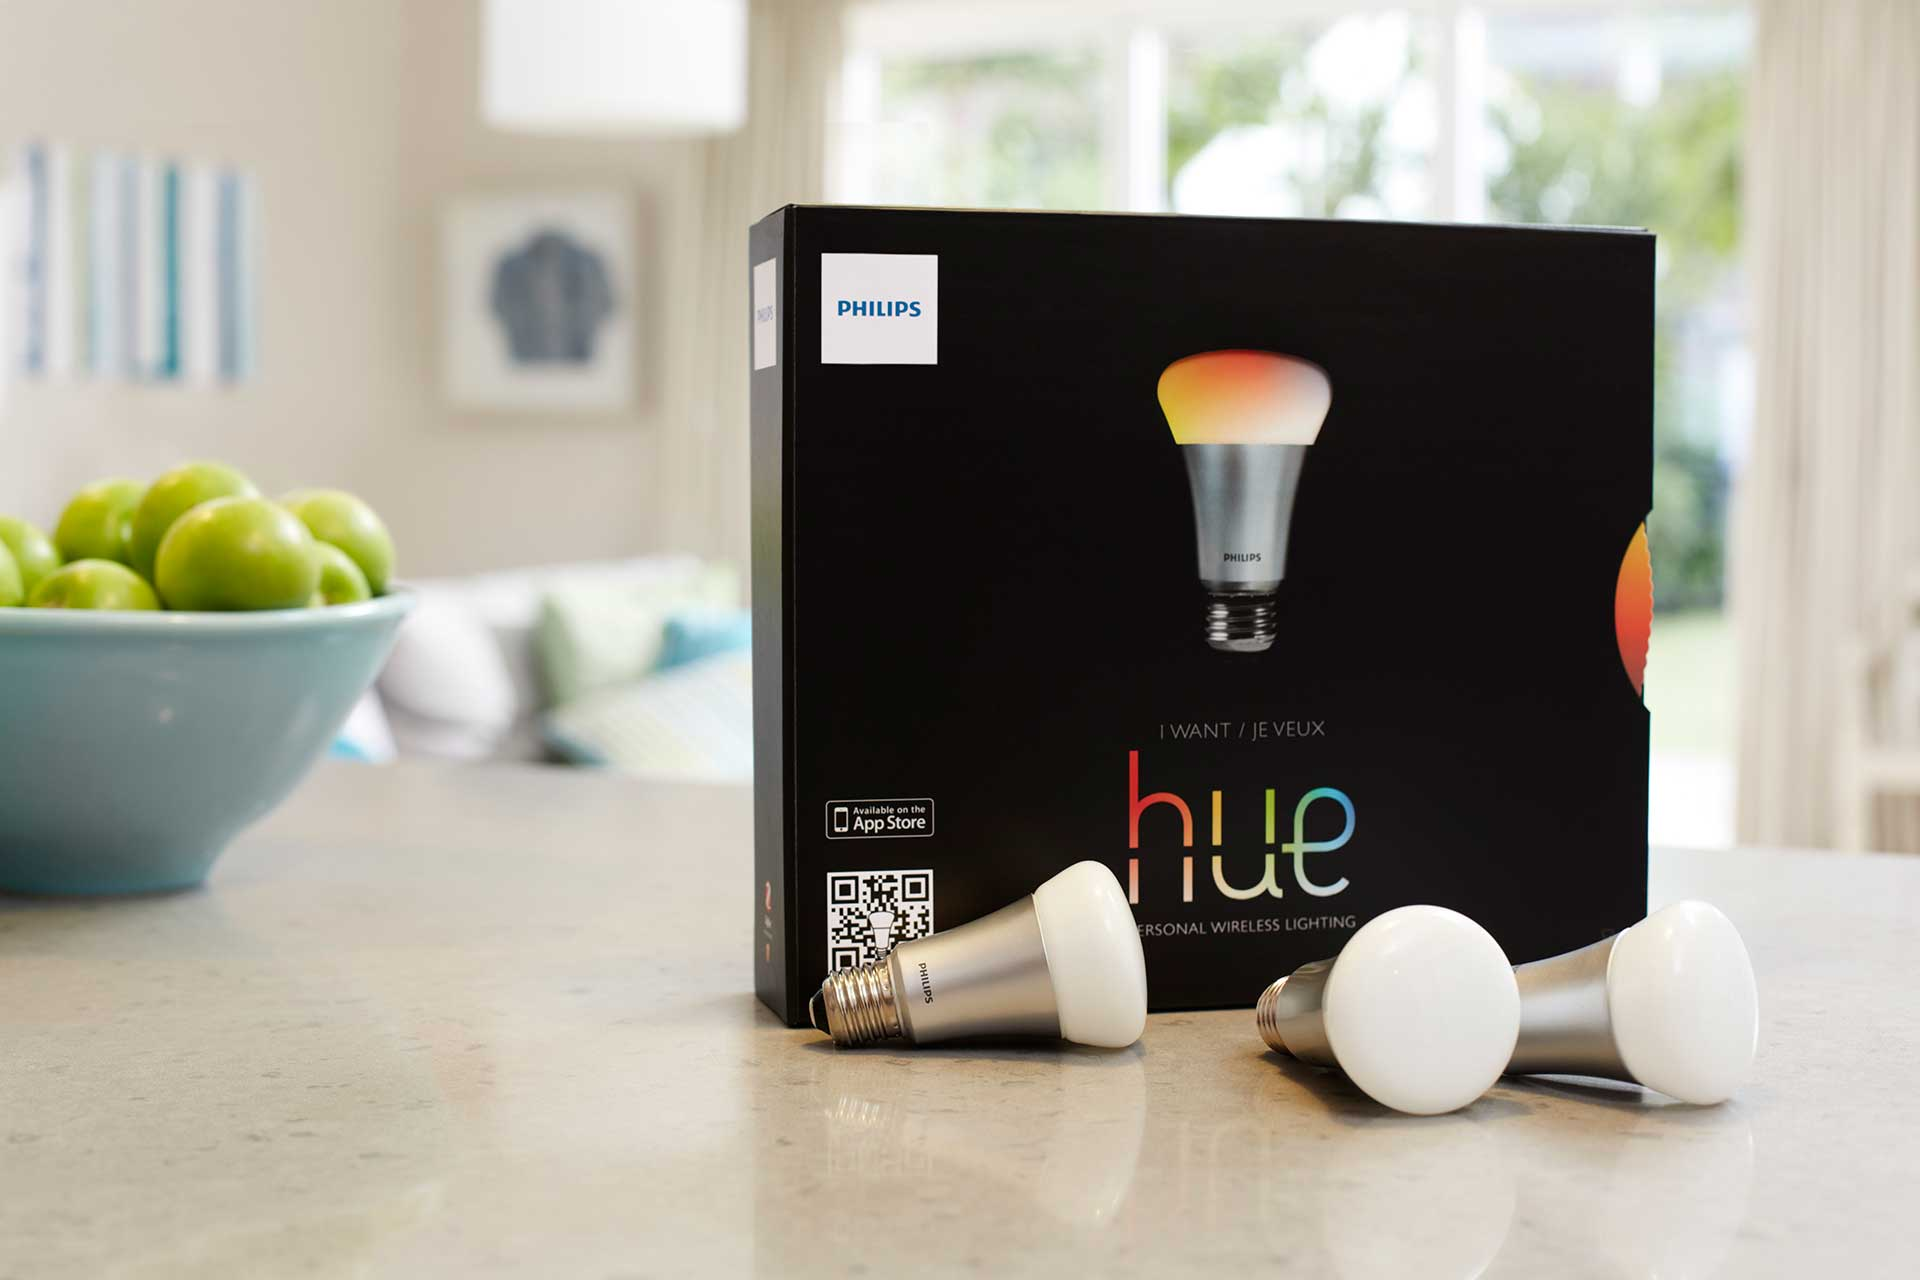 toon van eneco nu te koppelen met philips hue lampen numrush. Black Bedroom Furniture Sets. Home Design Ideas